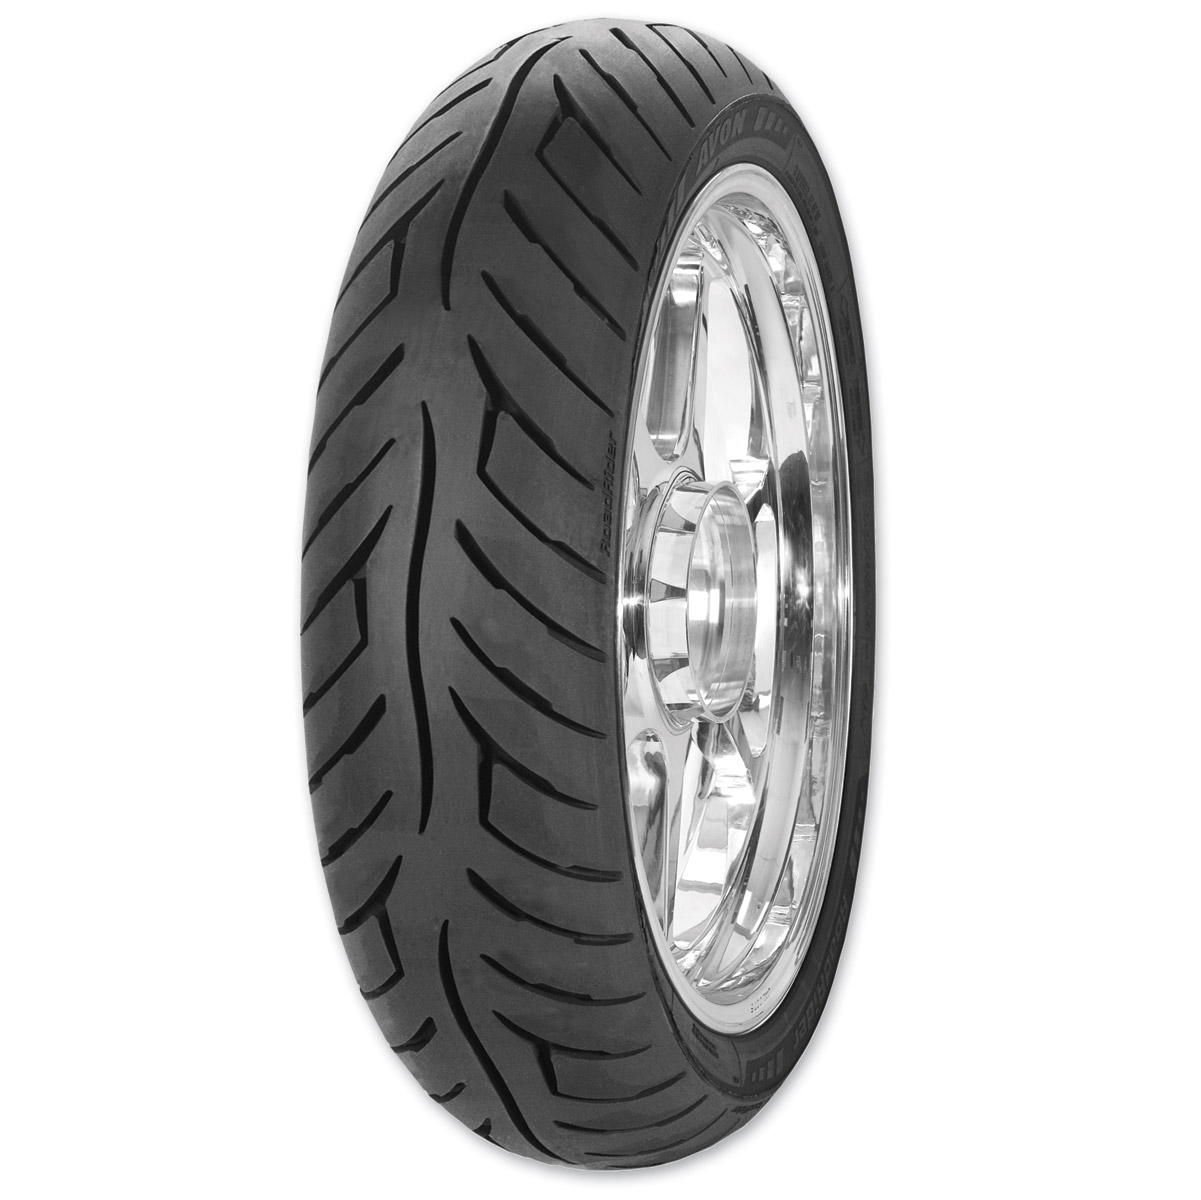 Avon AM 26 Roadrider 120/80-18 Rear Tire